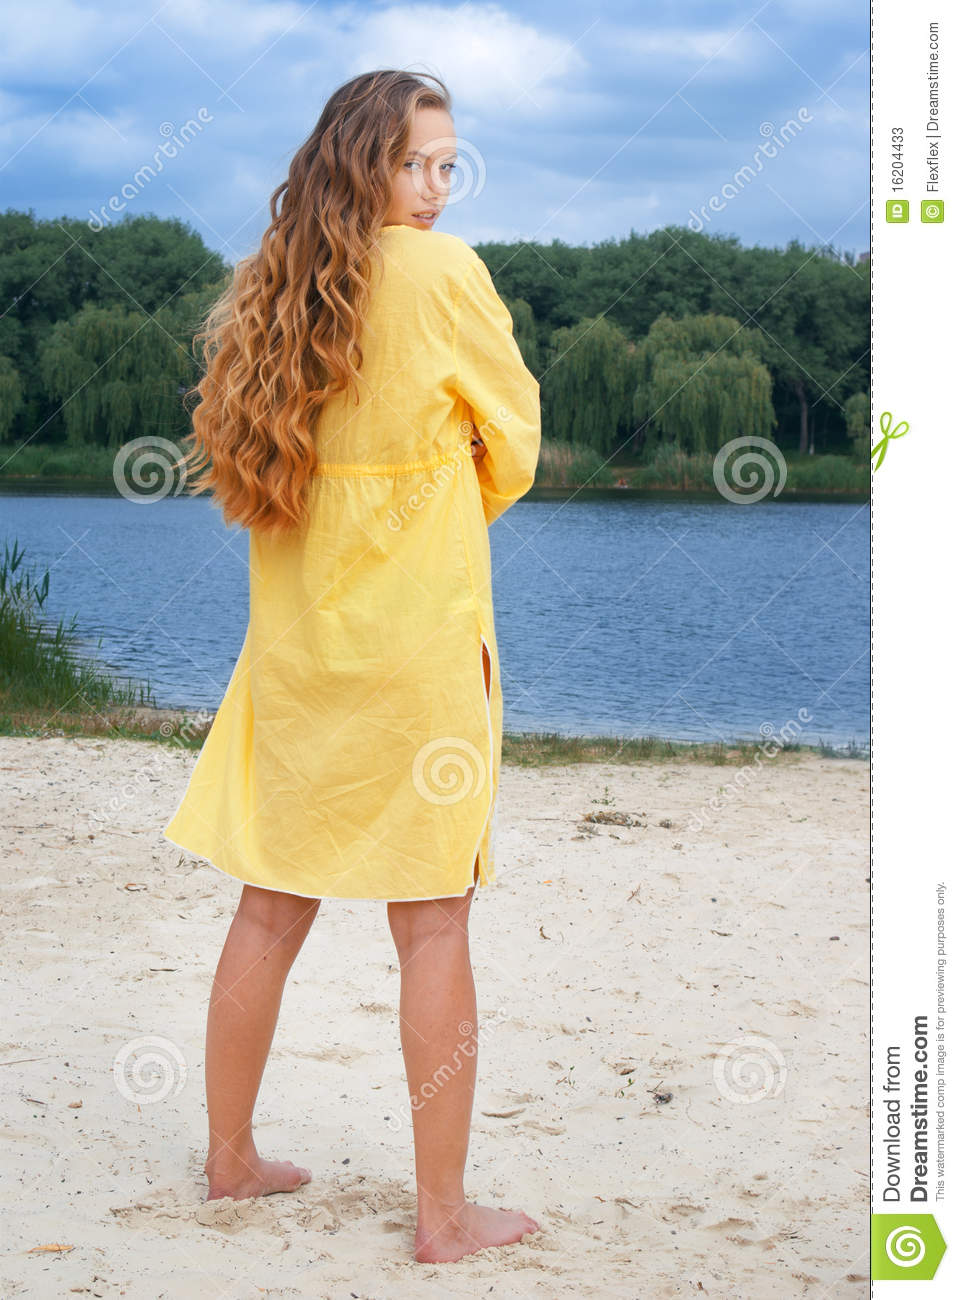 Attractive woman in yellow outfit on river beach